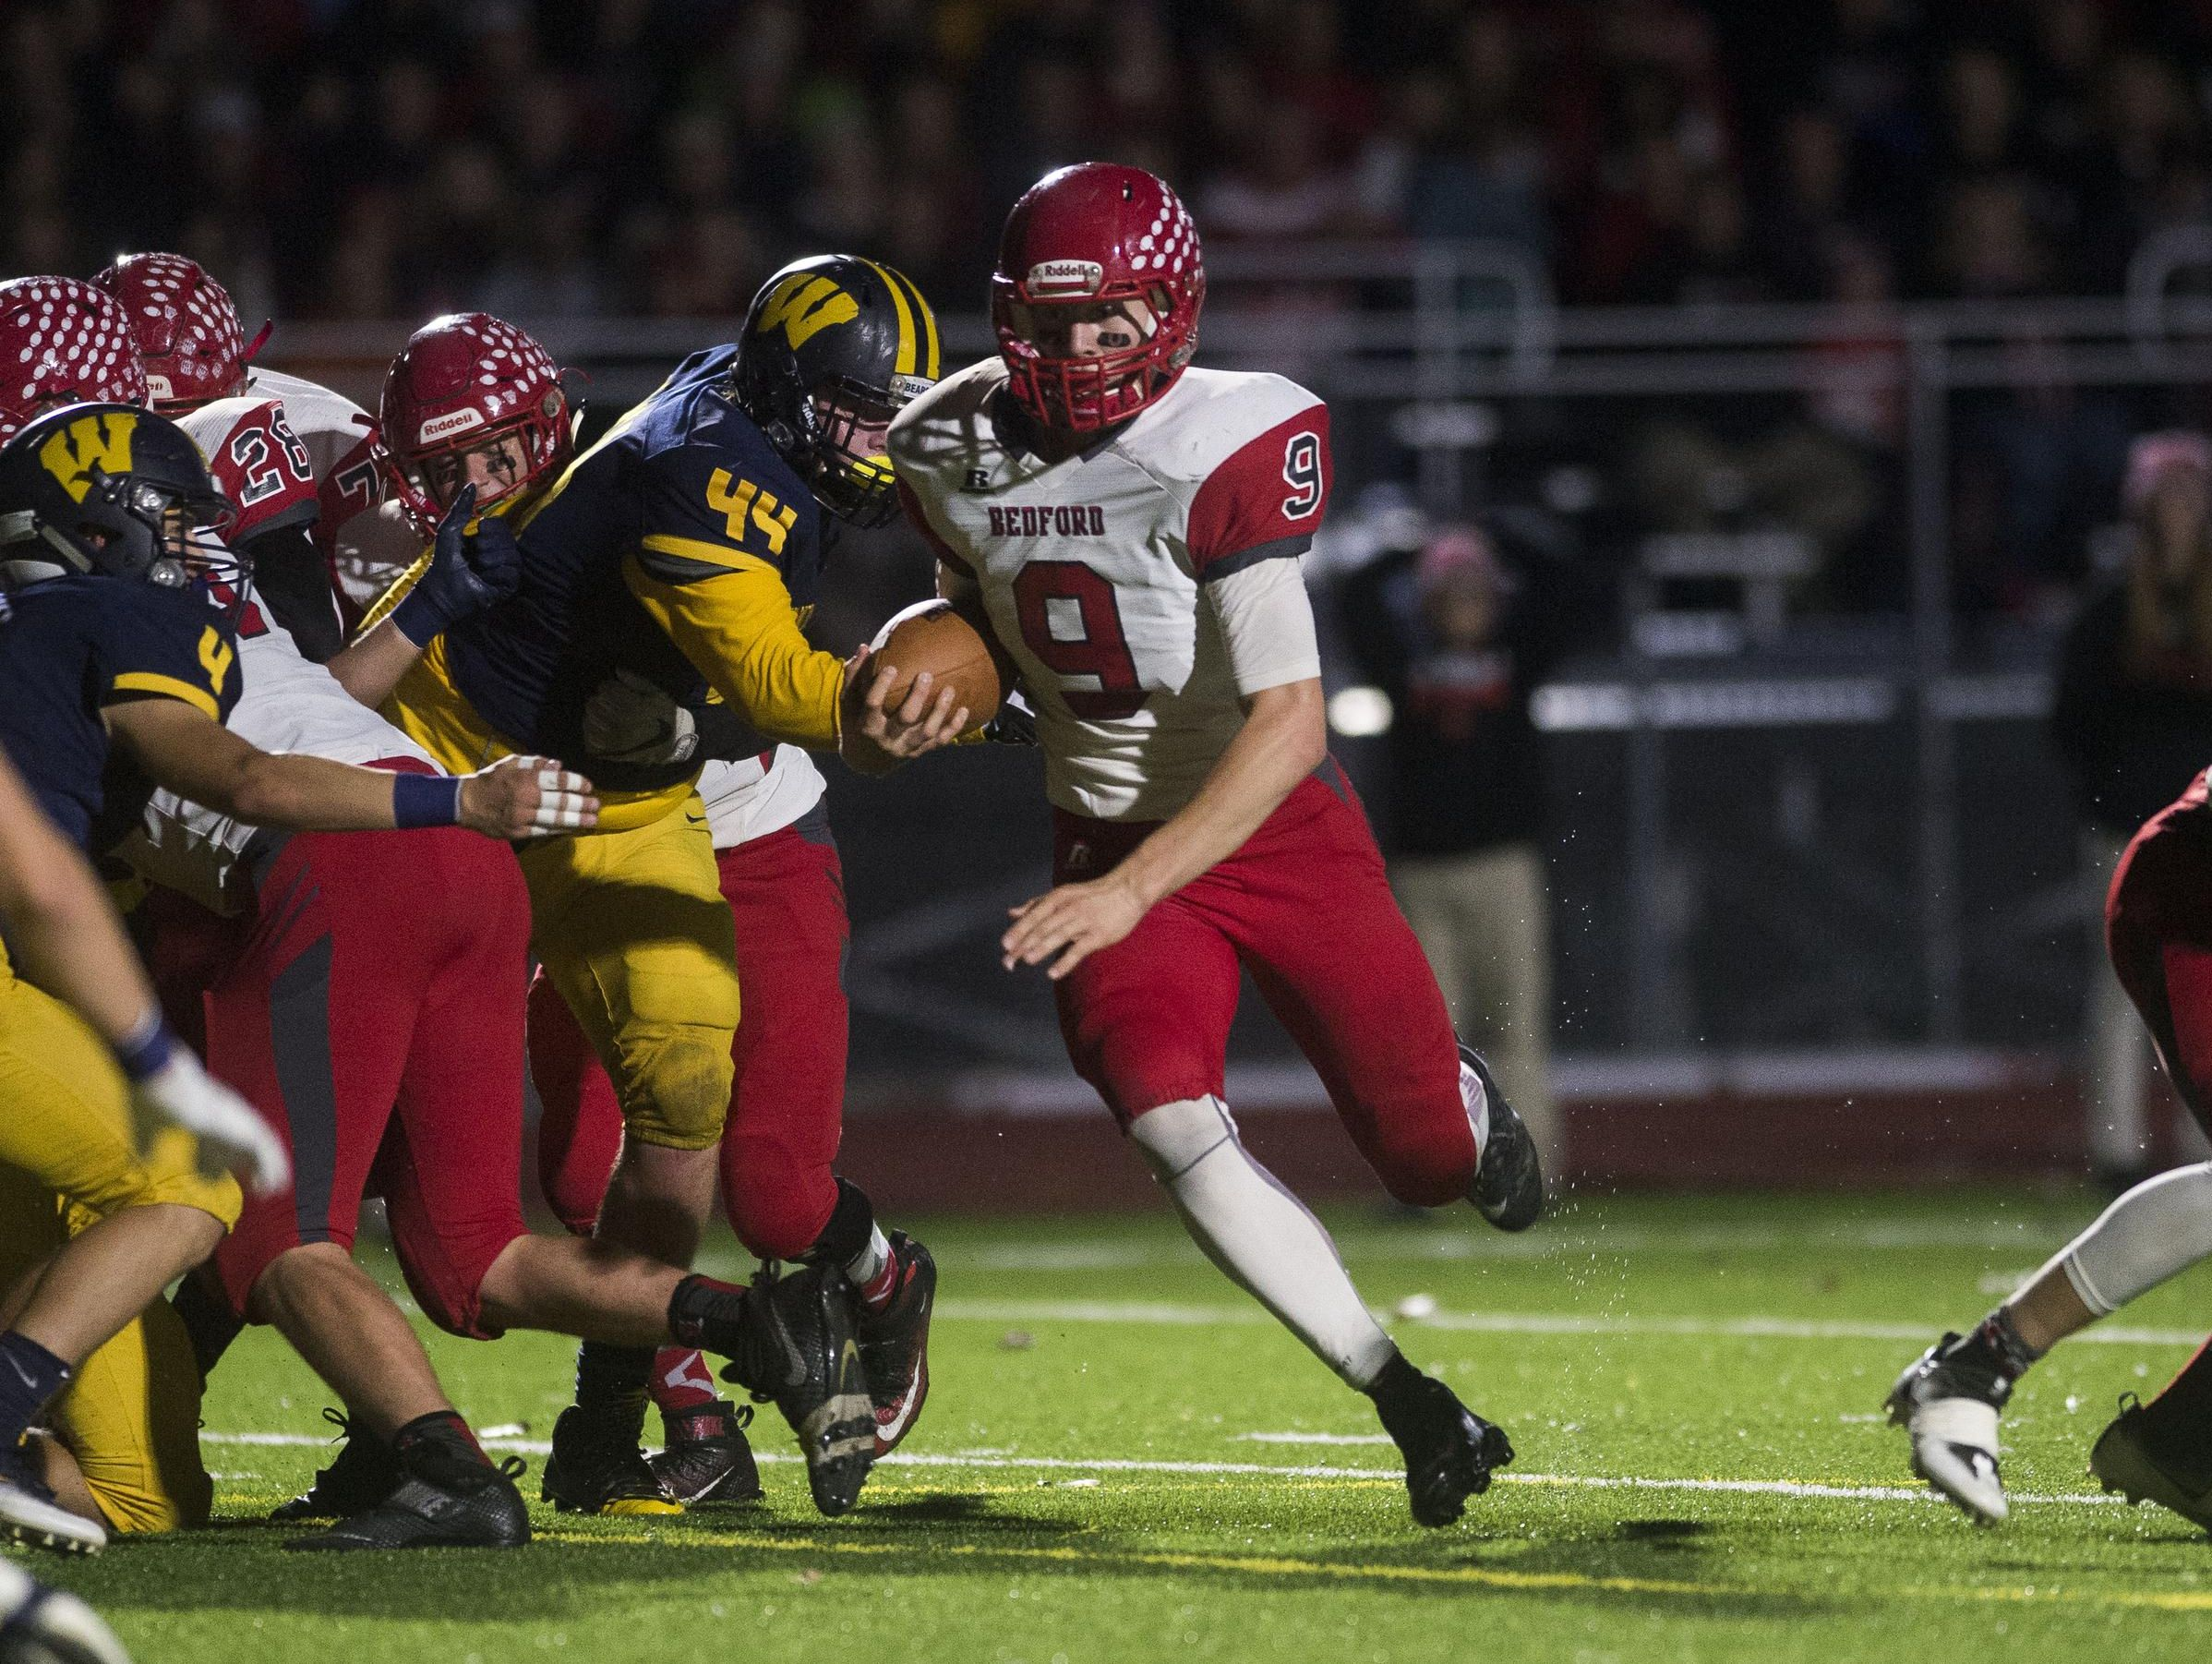 Host Detroit King will try to slow down Temperance Bedford's Joey Wiemer and the Kicking Mules' veer offense in a regional final Saturday.